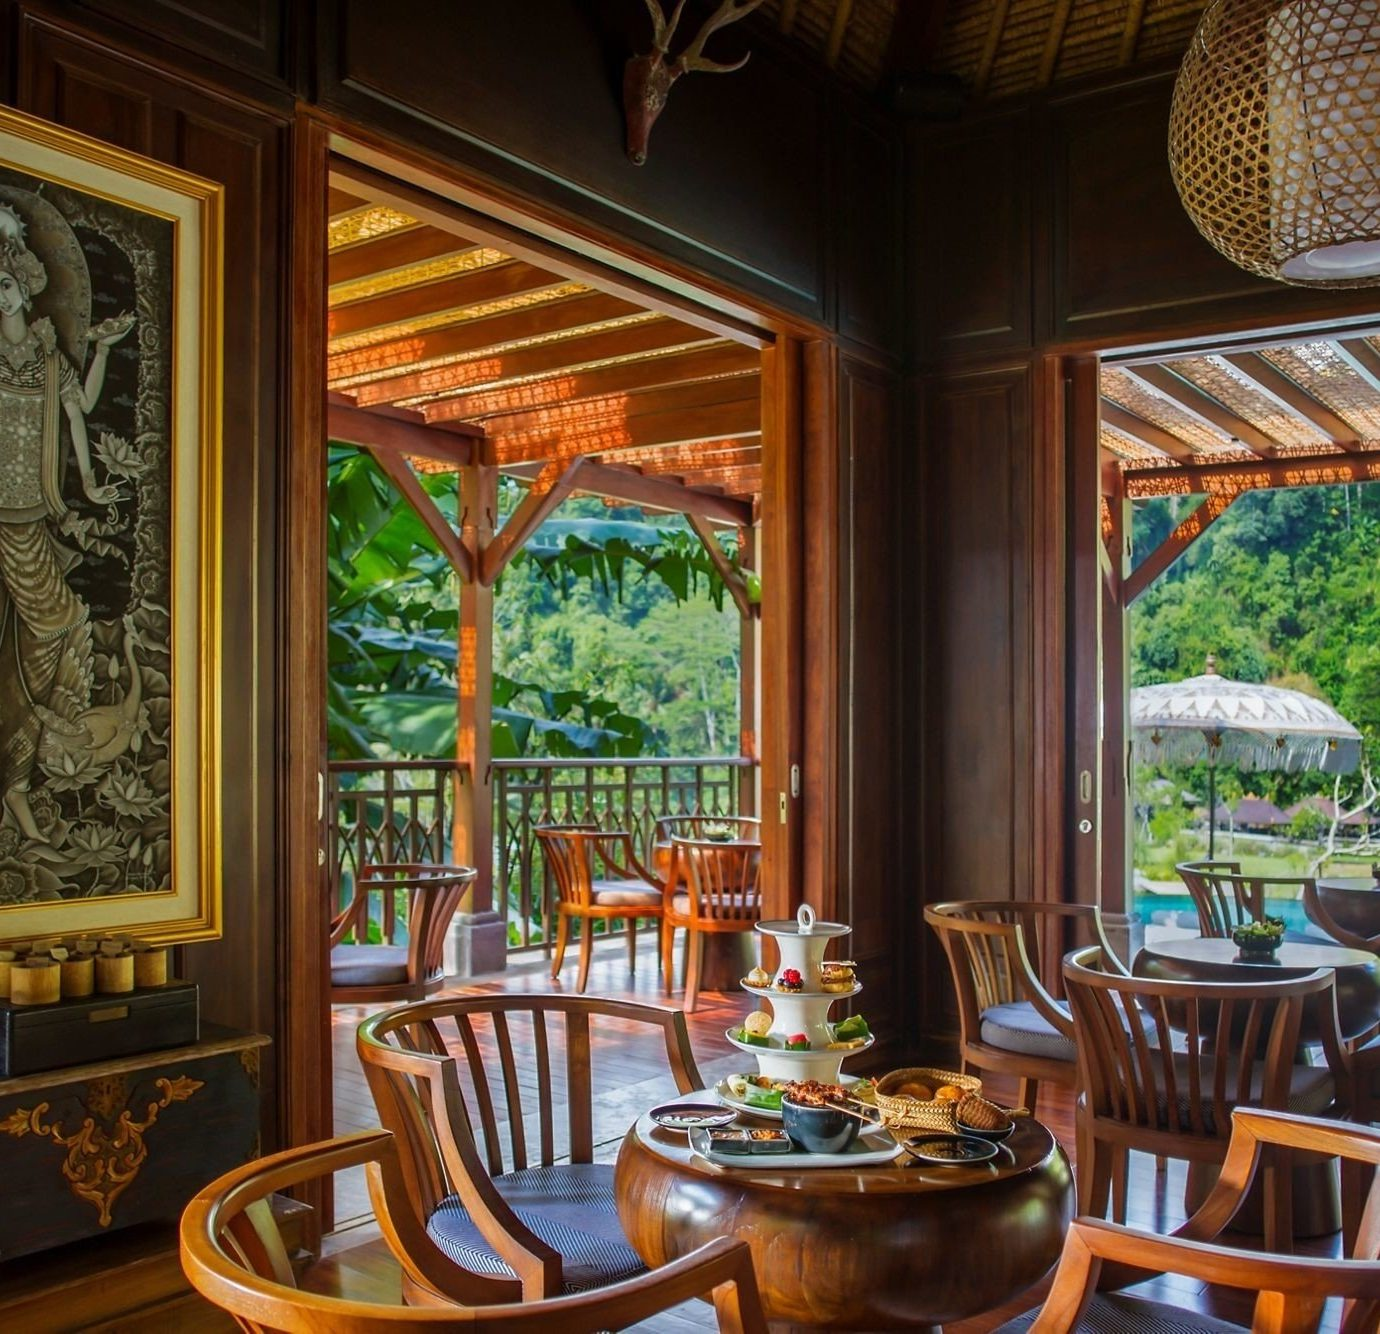 chair property Dining home Resort mansion restaurant living room palace Villa cottage dining table